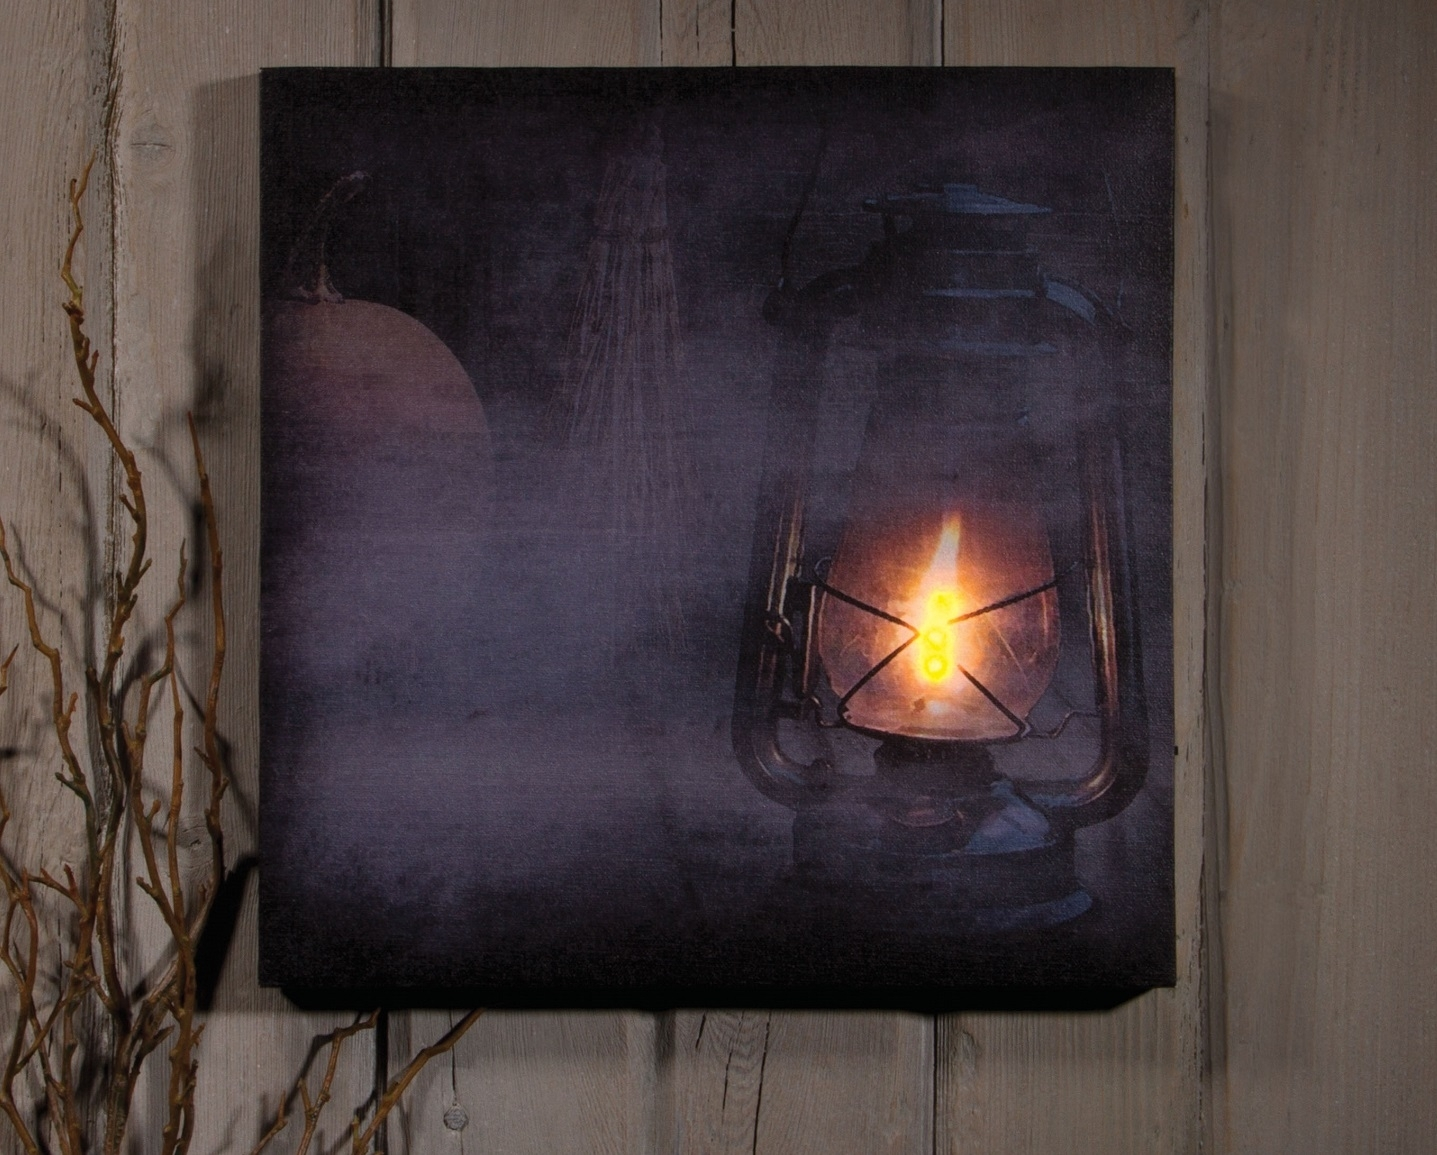 Cool 60+ Lighted Canvas Wall Art Design Ideas Of Church In Winter Pertaining To Latest Halloween Led Canvas Wall Art (View 2 of 15)